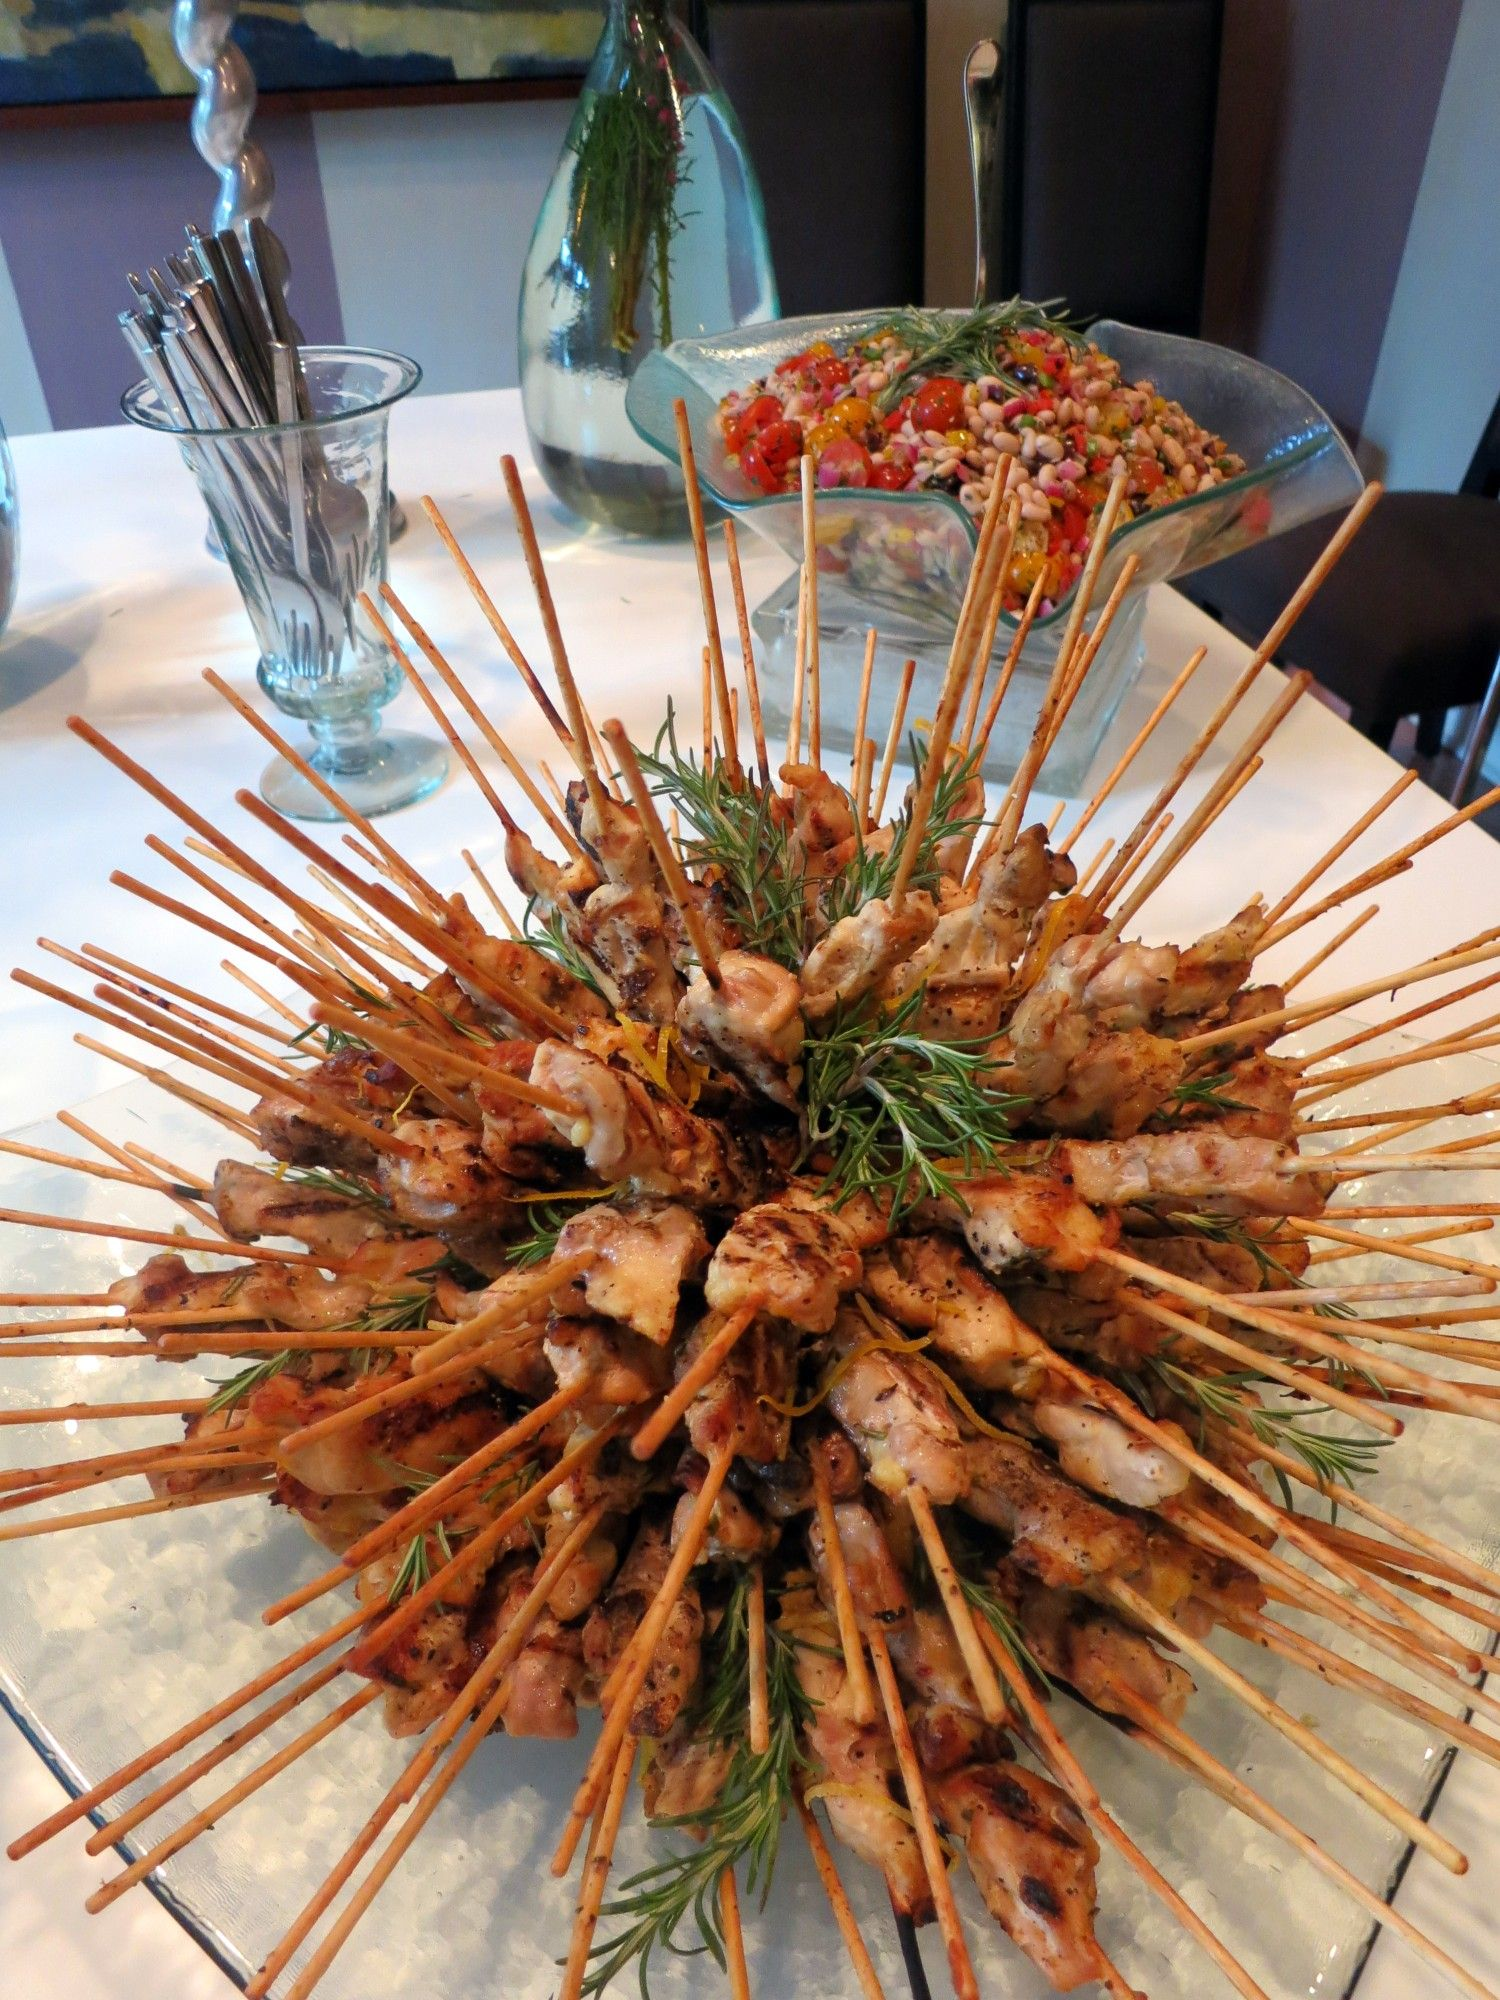 Pin by Chastity Watkins on Reception food ideas | Pinterest